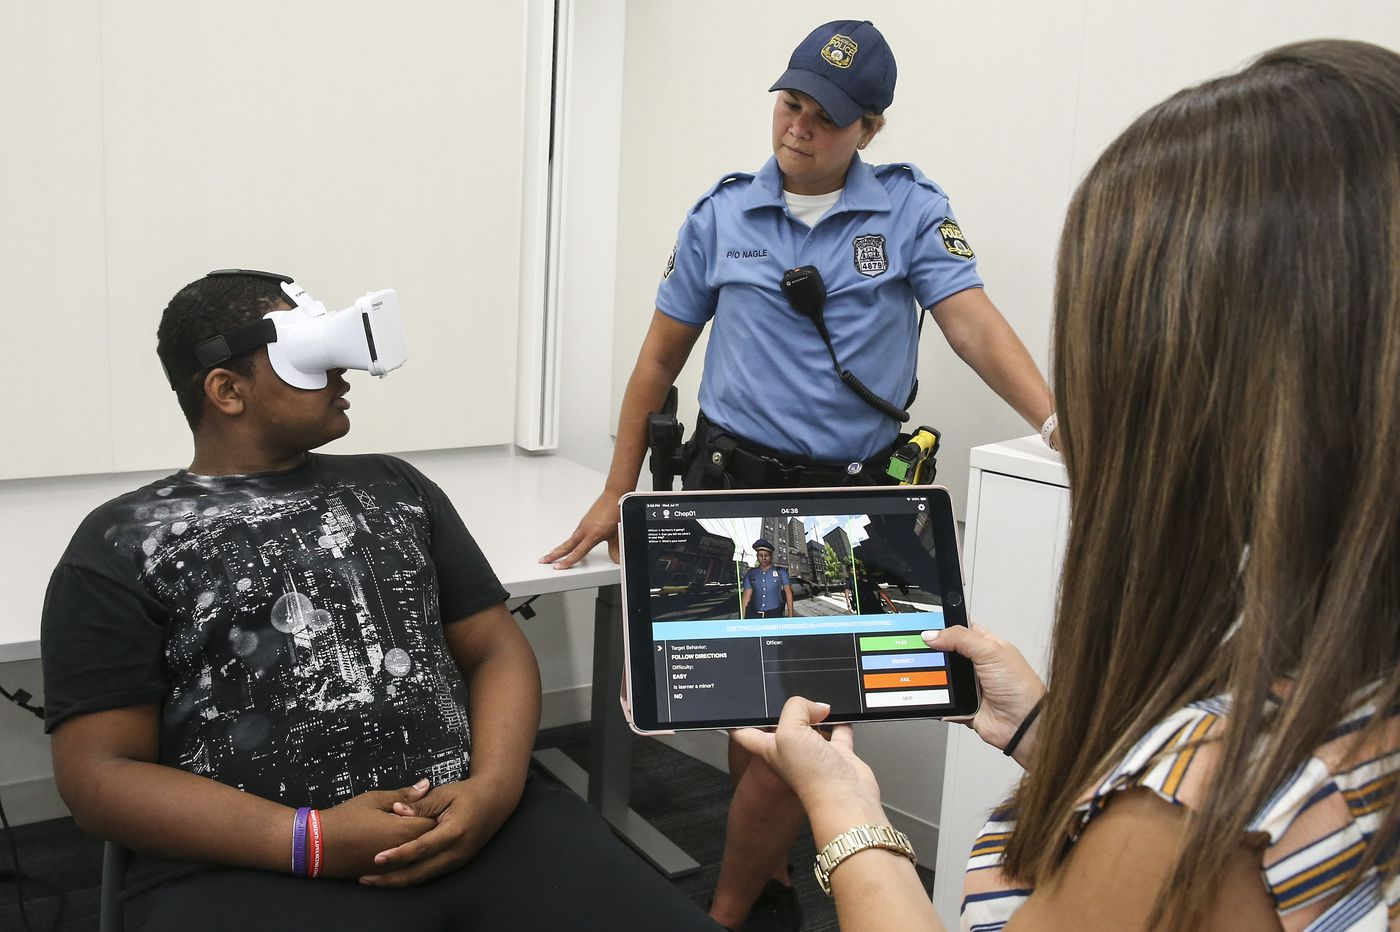 People with autism face special risks dealing with police. This virtual reality program could help.